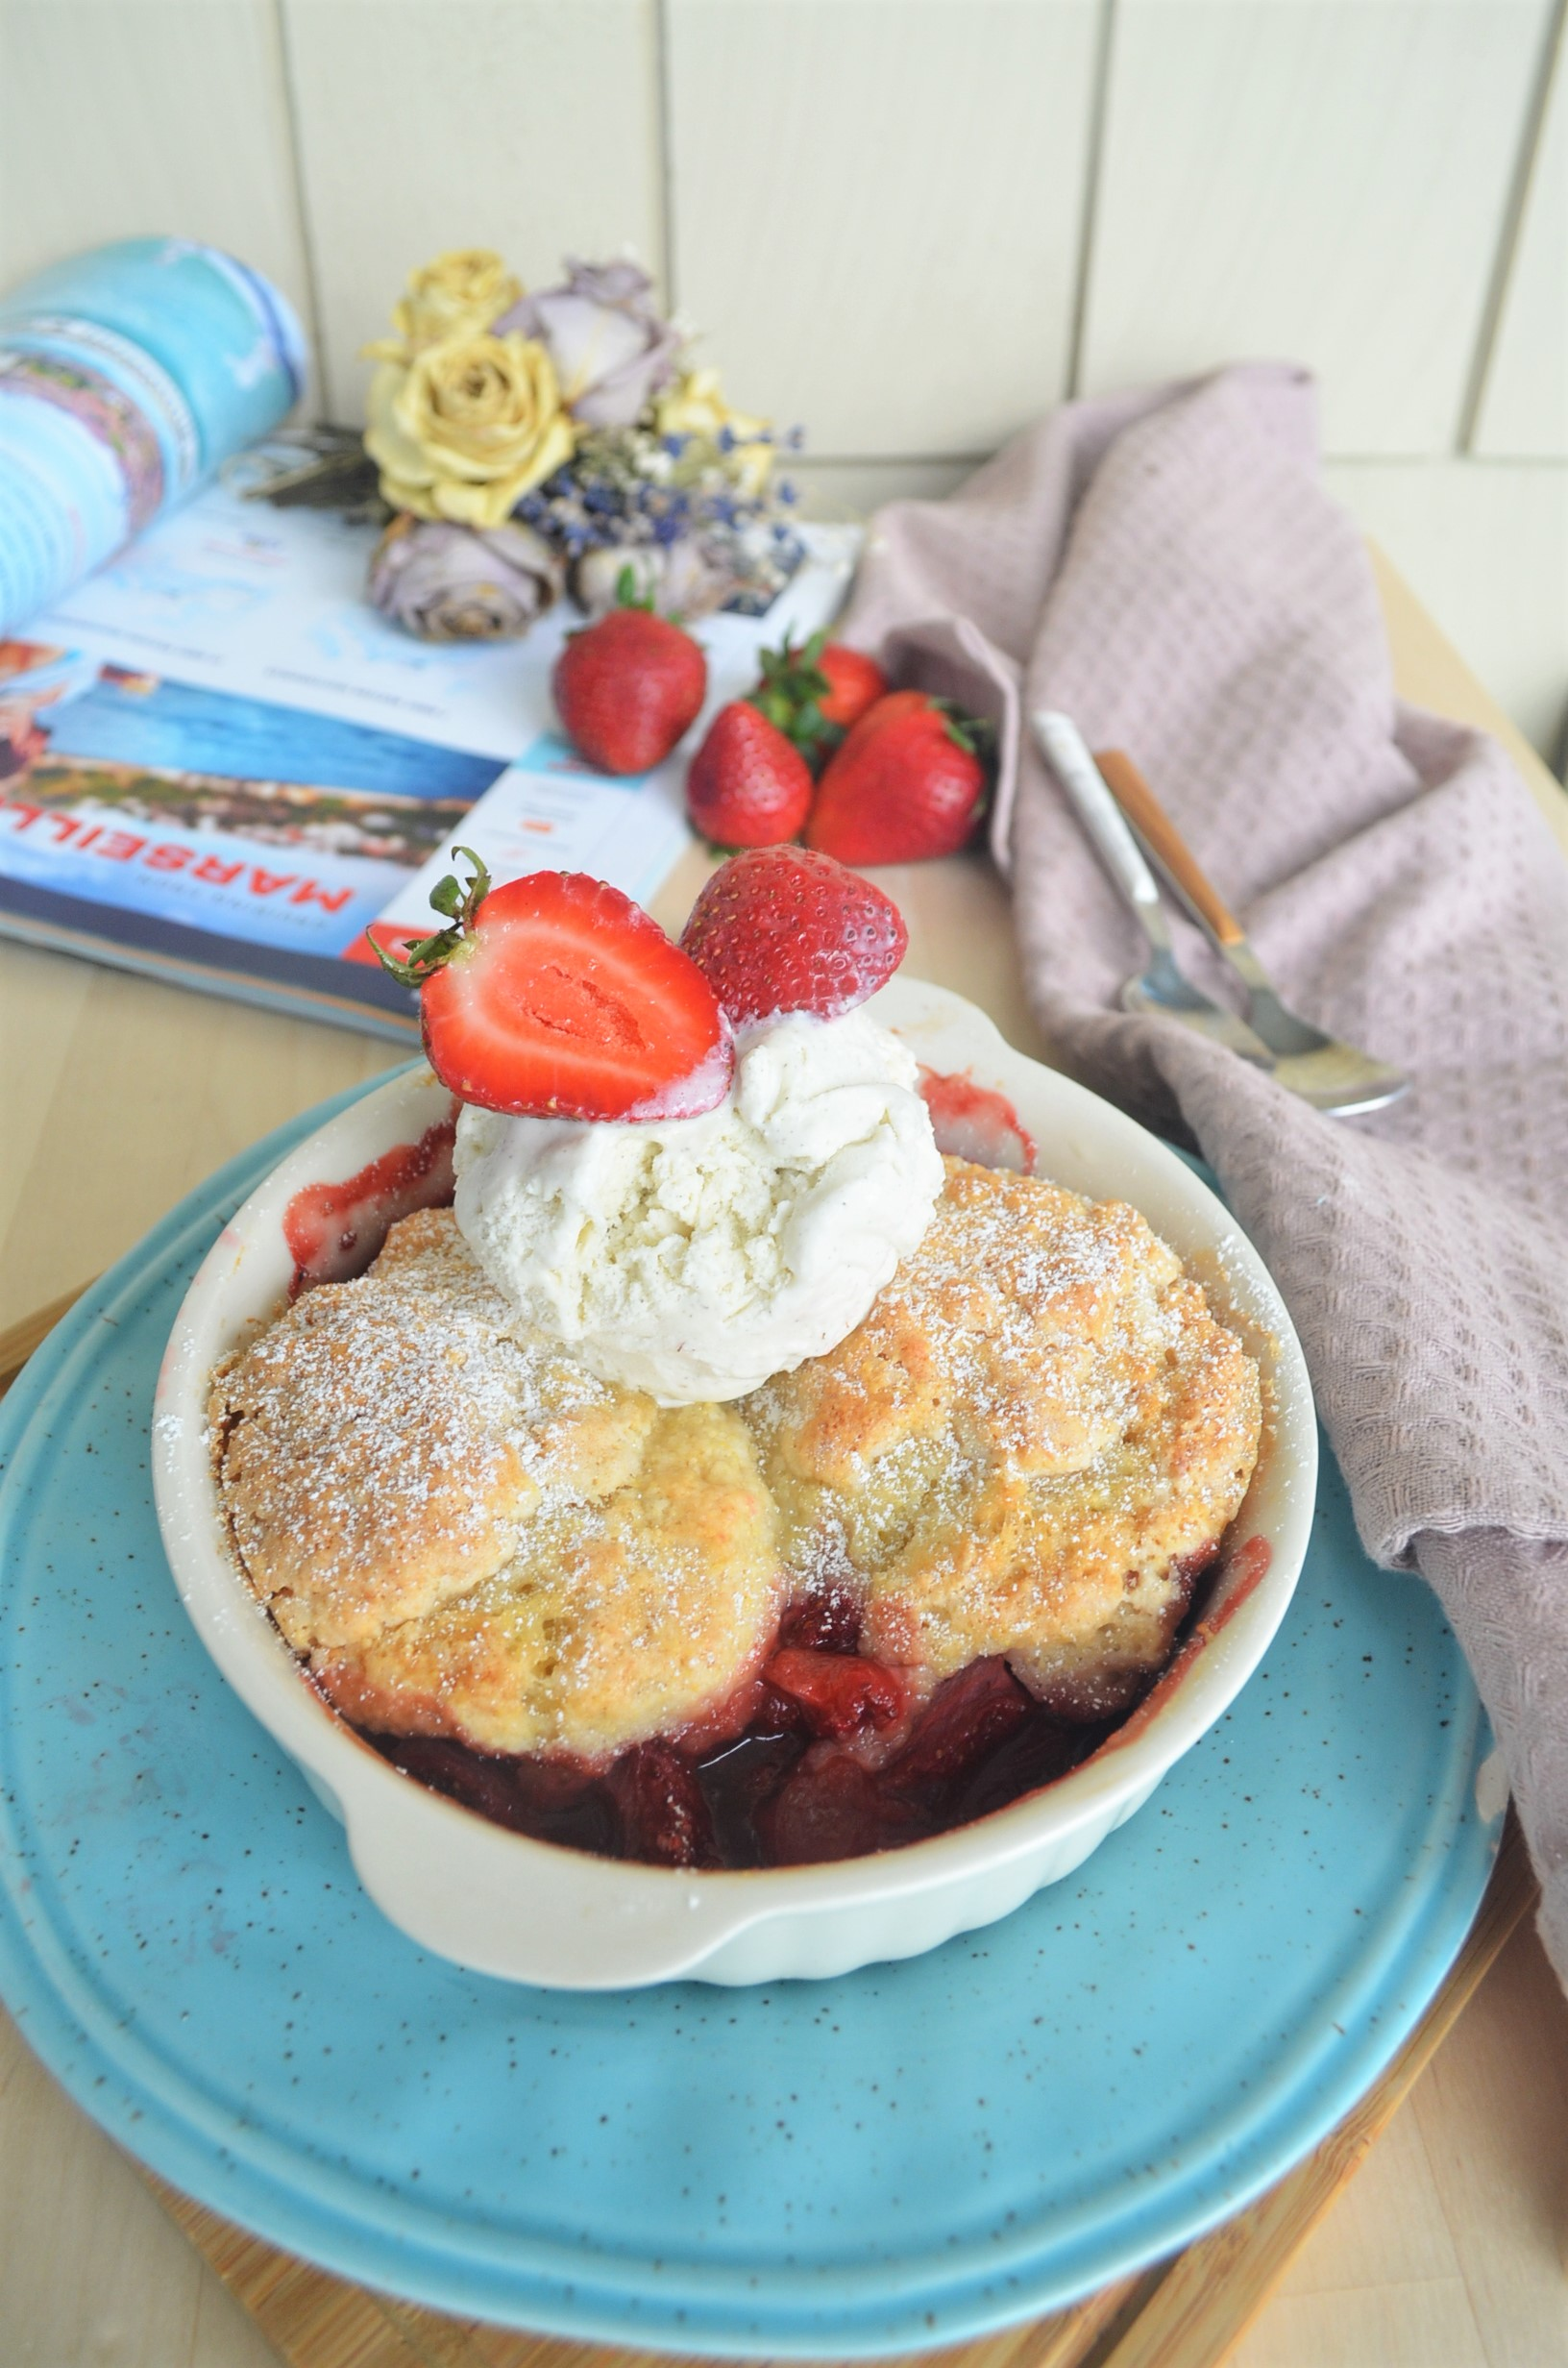 Strawberry Cobbler with Cornameal Biscuit Topping